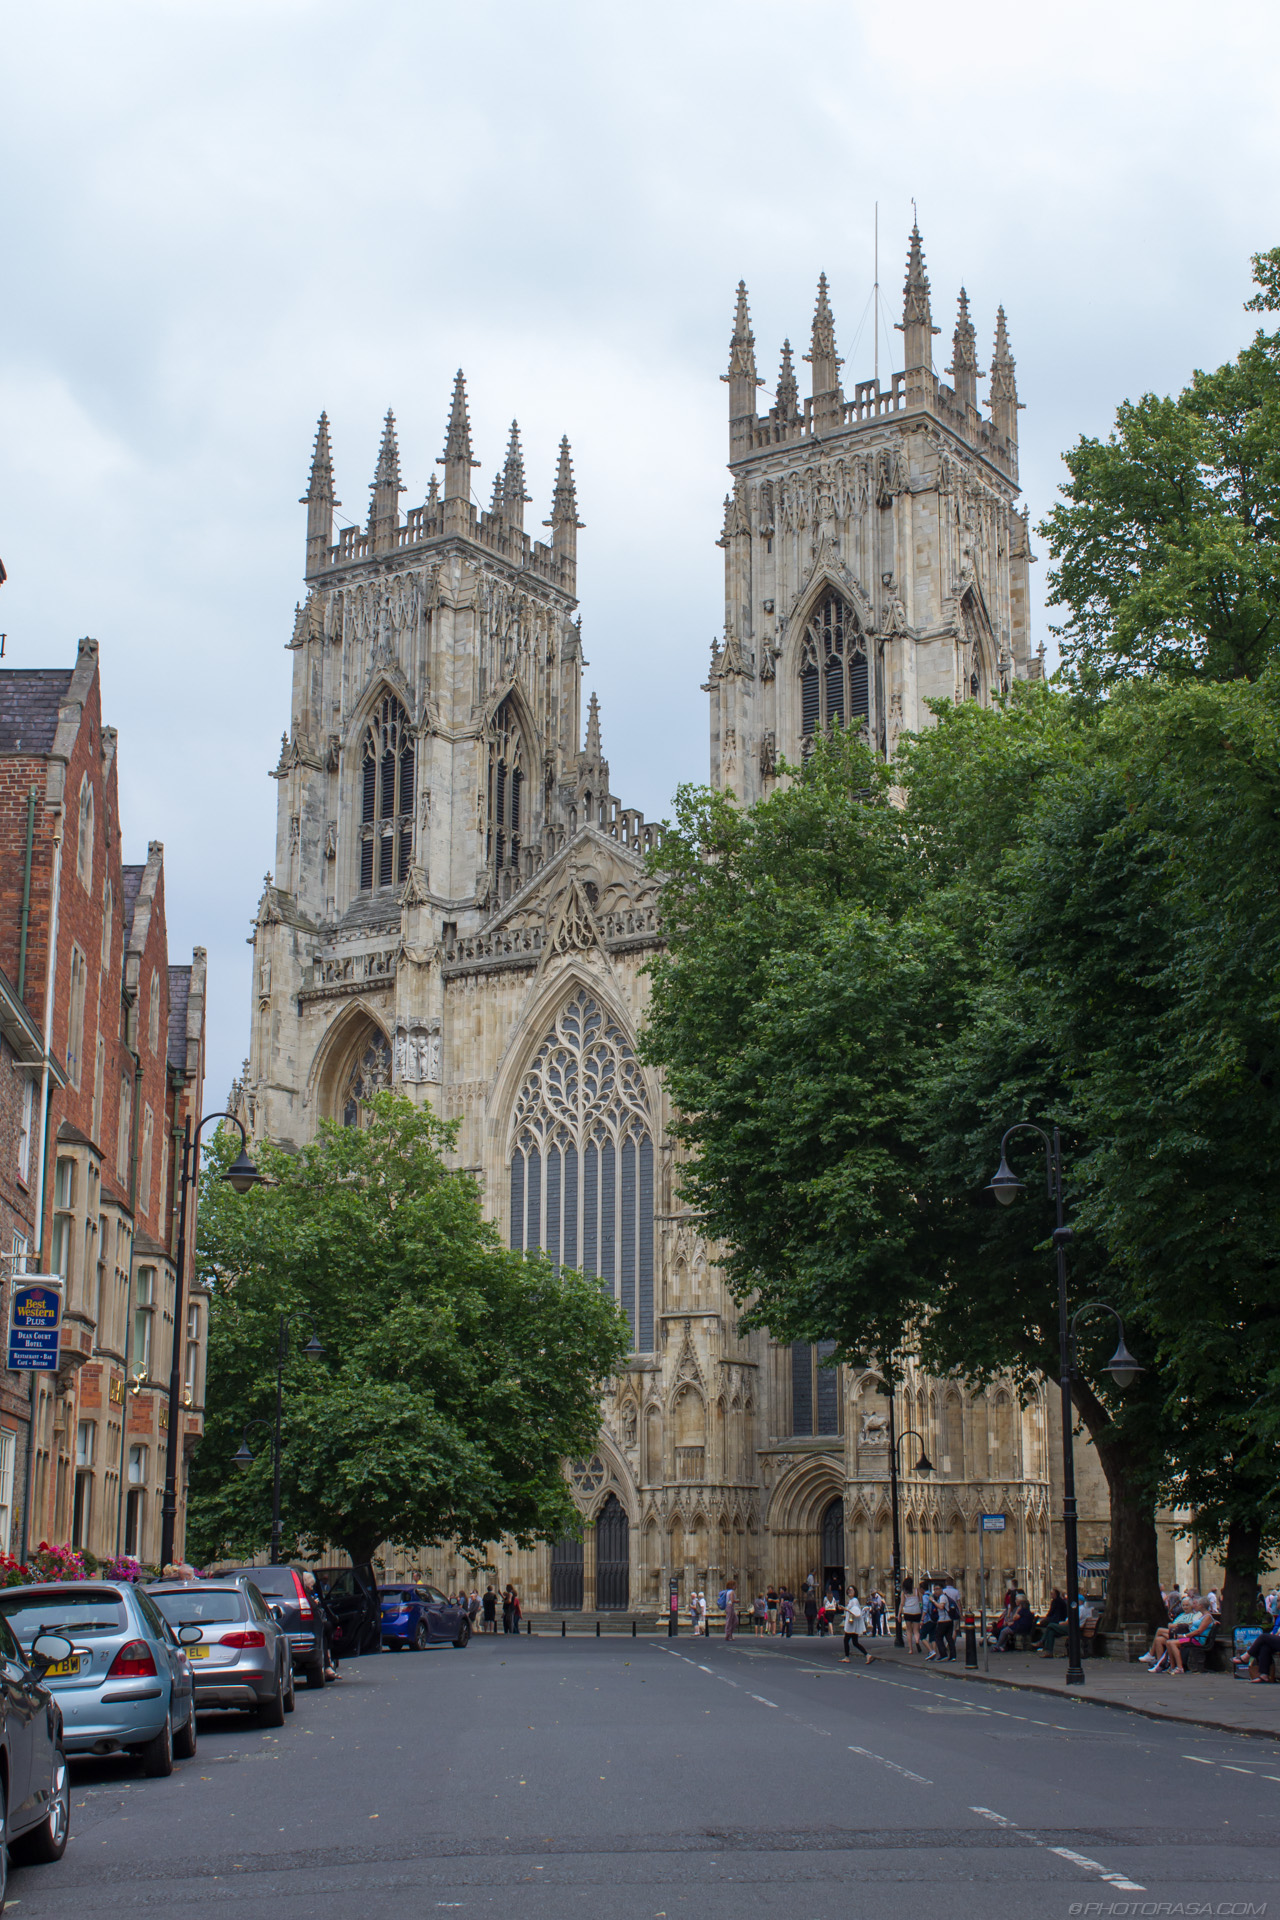 http://photorasa.com/yorkminster-cathedral/york-minster-cathedral-from-precentors-court-road/